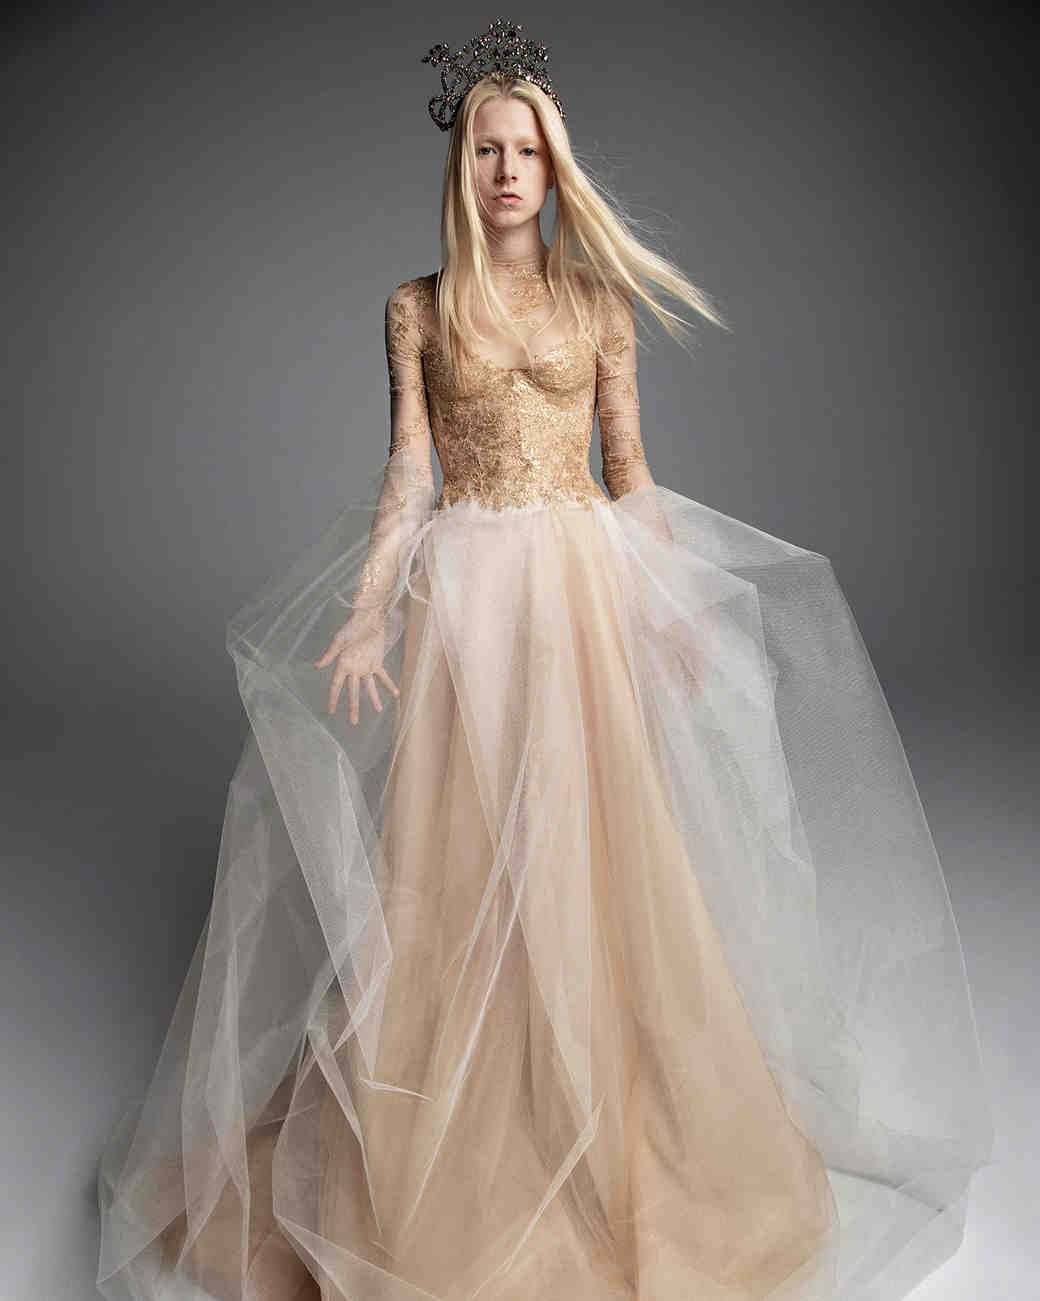 bbb111dca1a Vera Wang Fall 2019 Wedding Dress Collection